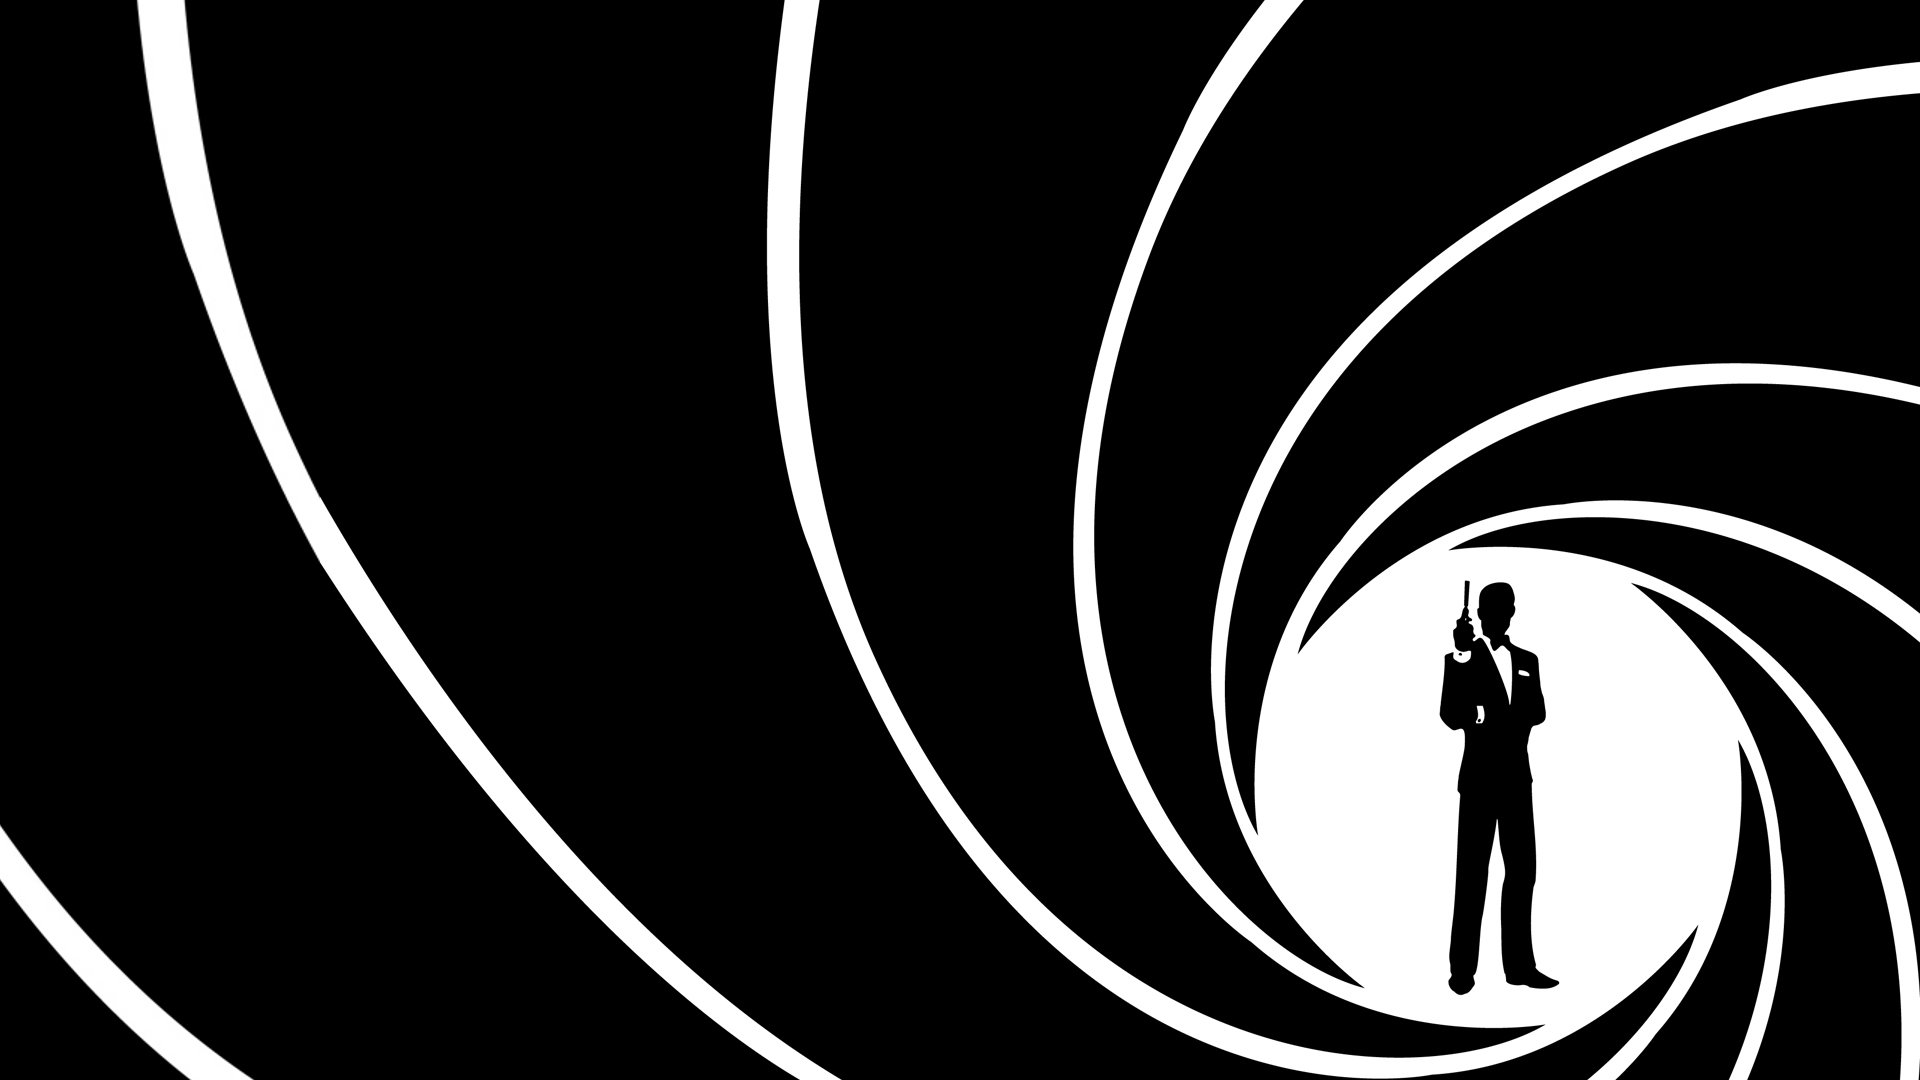 HD Bond Background Wallpapers for 1920x1080